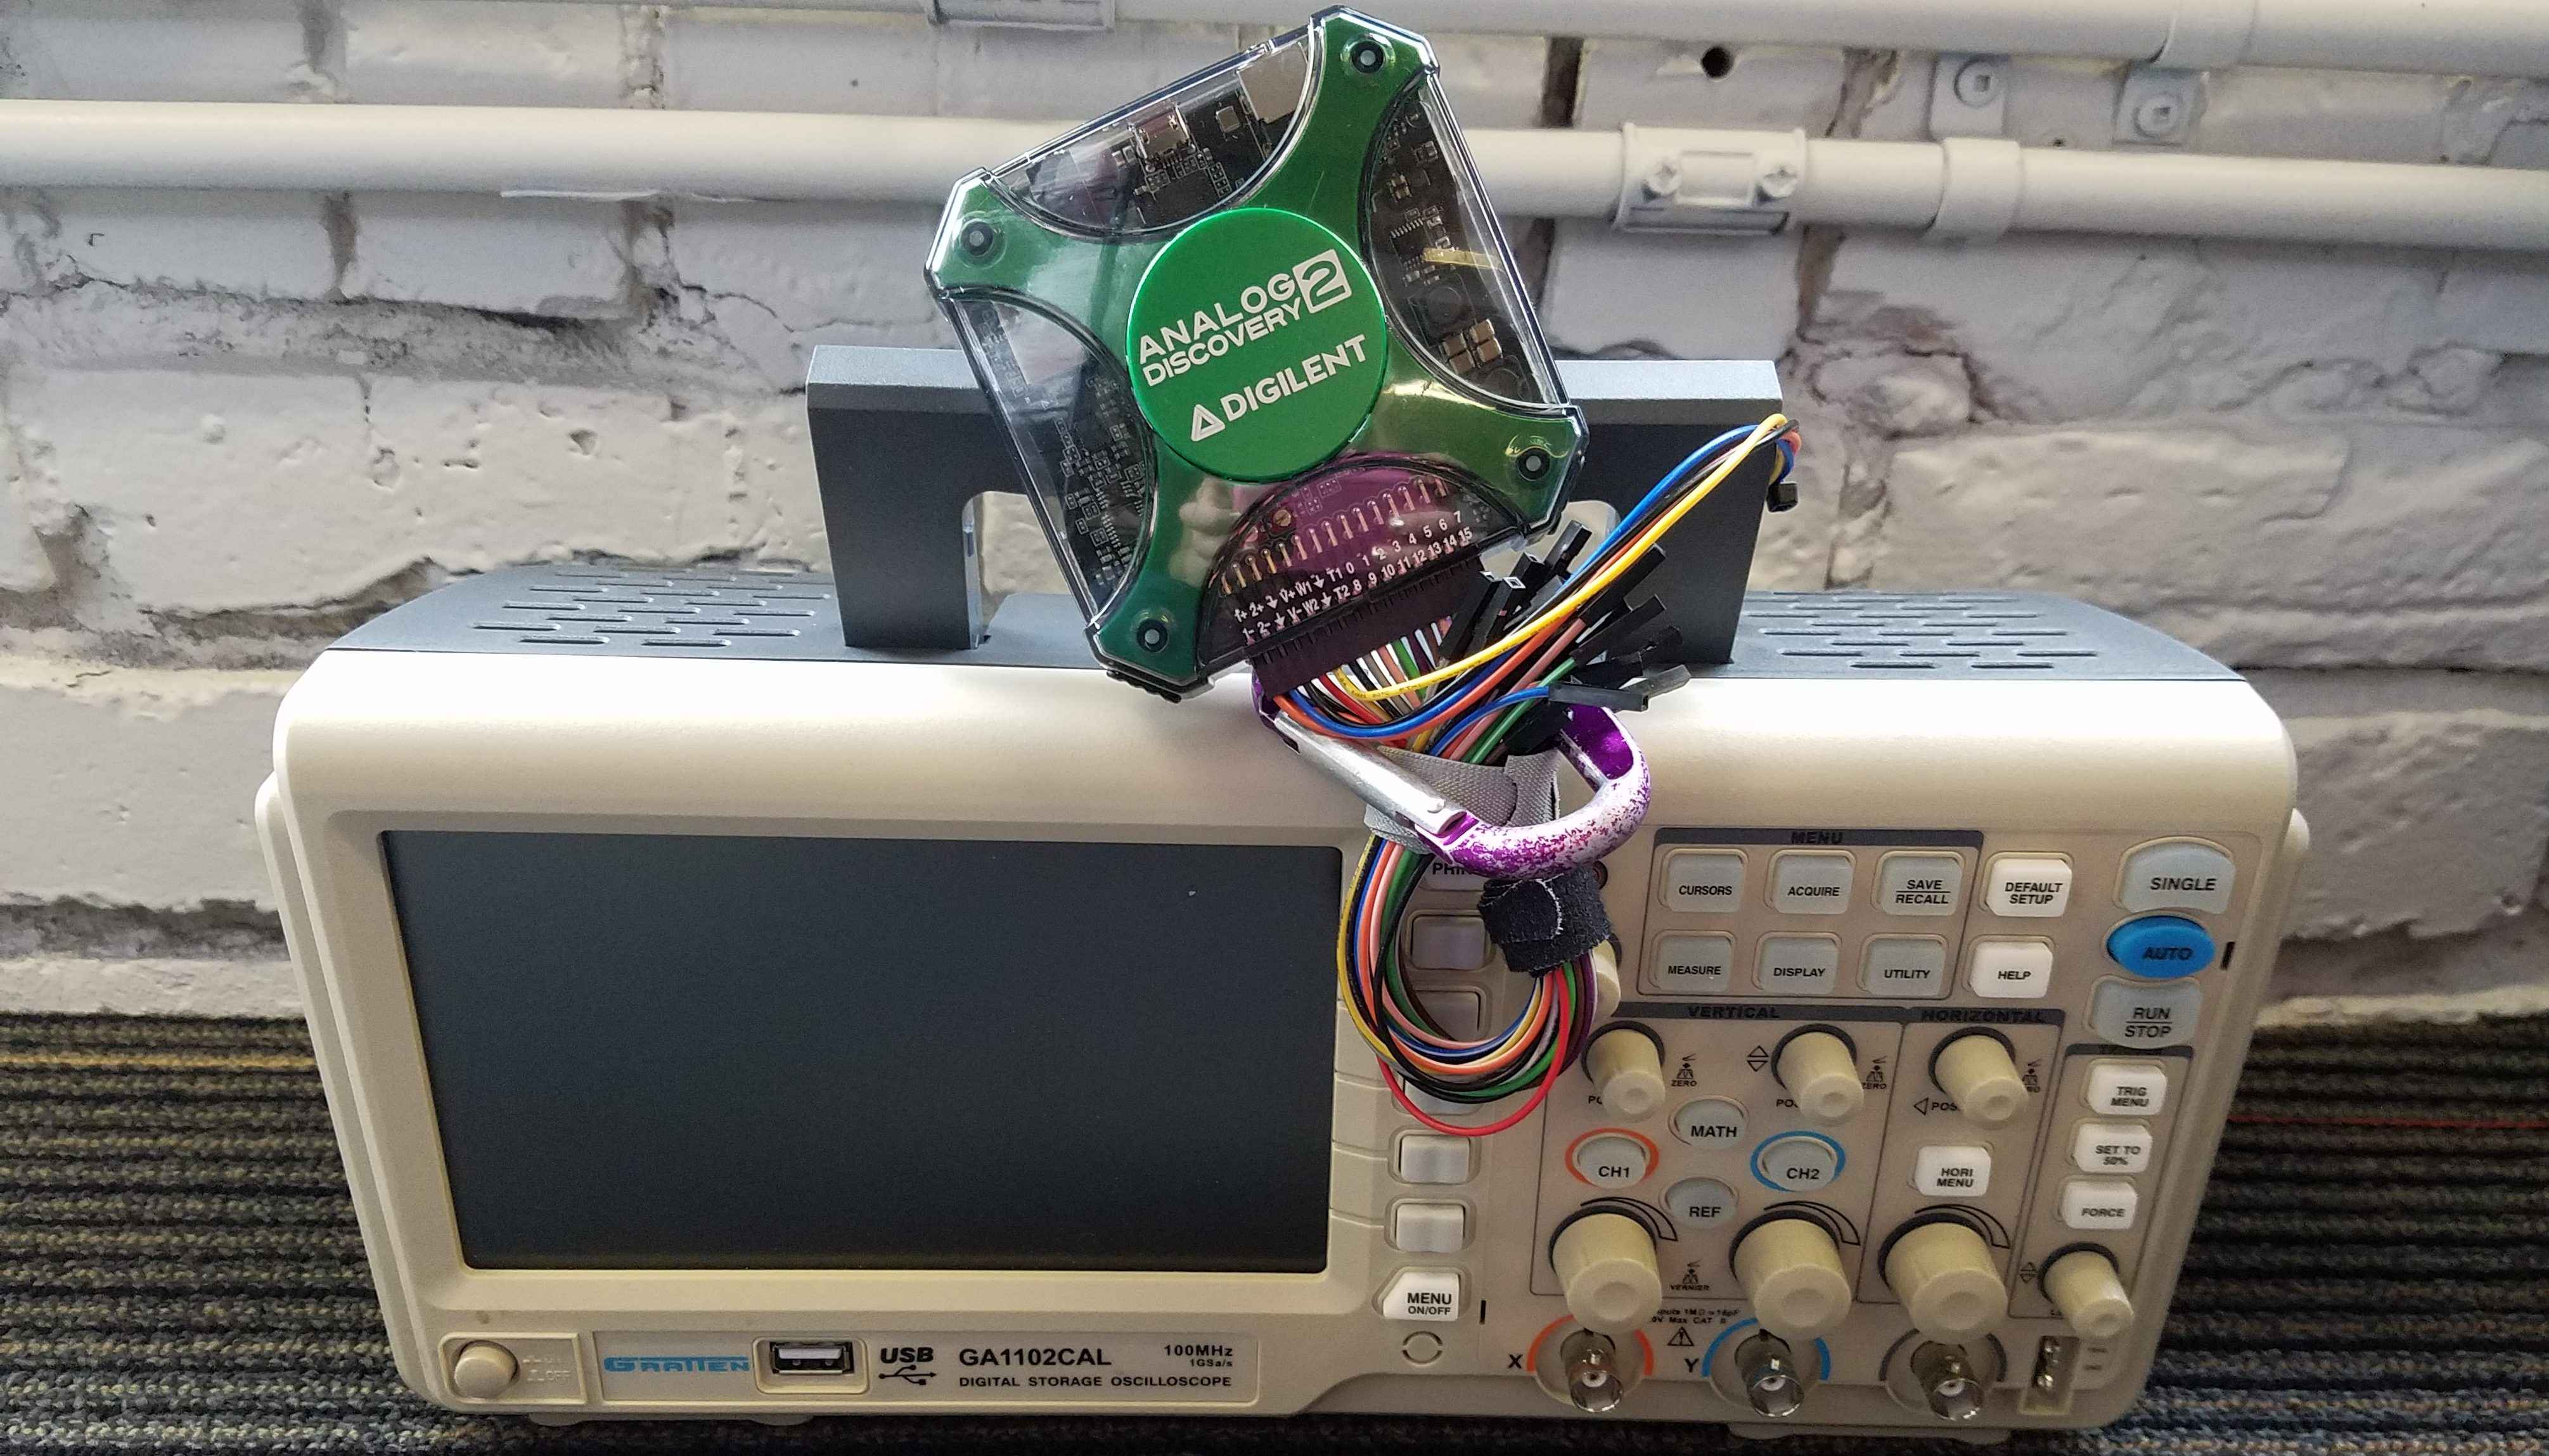 Common Misconceptions About Usb Oscilloscopes Digilent Inc Blog Circuit Of Pcbased Data Logger Is Designed Around Analog To Digital There Has Been A Lot Talk As The Technology And Software Becomes Faster More Advanced With All These Portable New